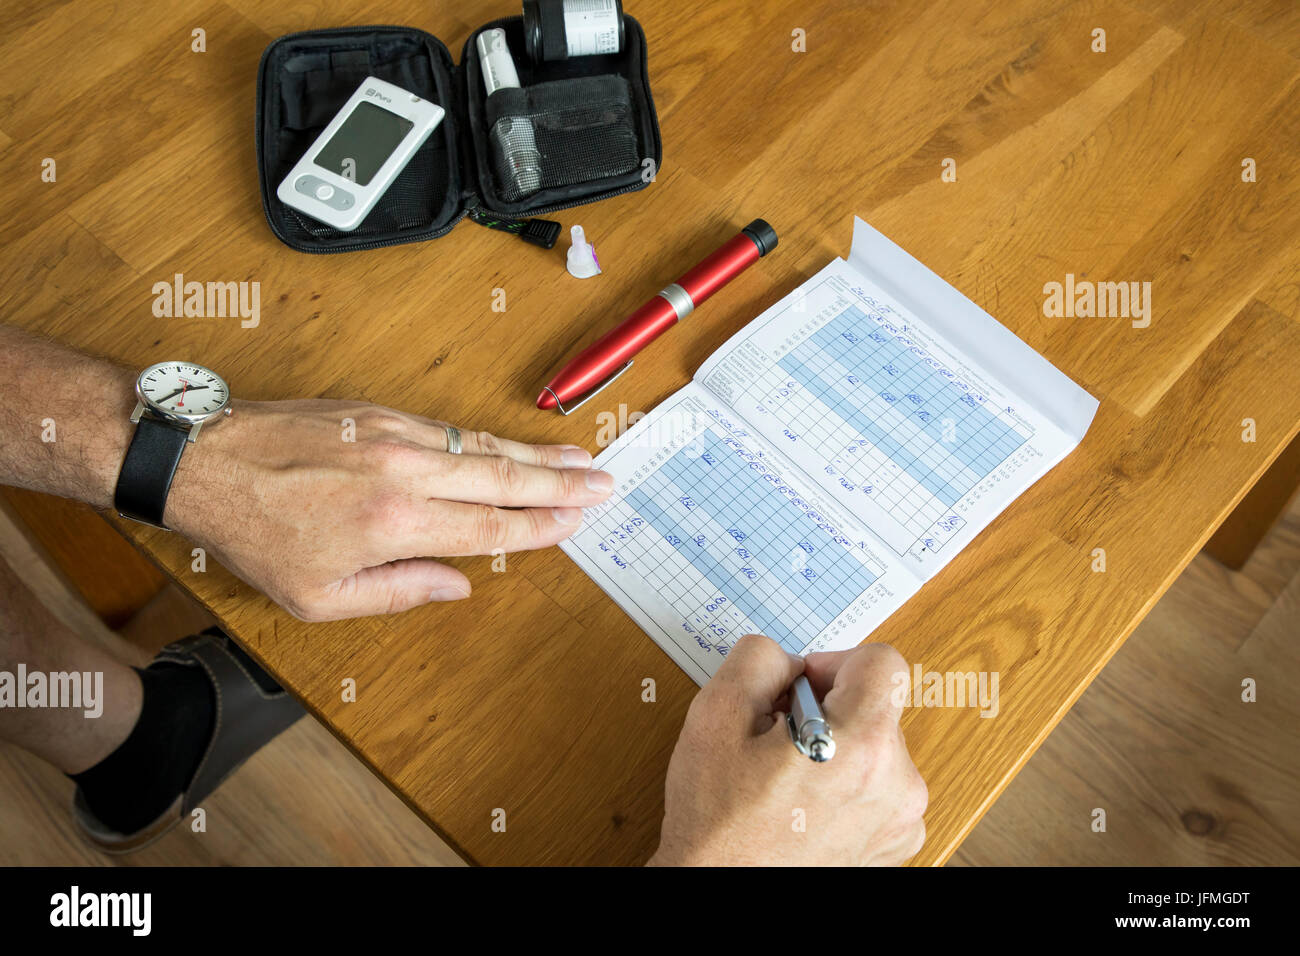 Diabetic make notes in  his blood glucose test book, notes about blood glucose levels, diary, - Stock Image